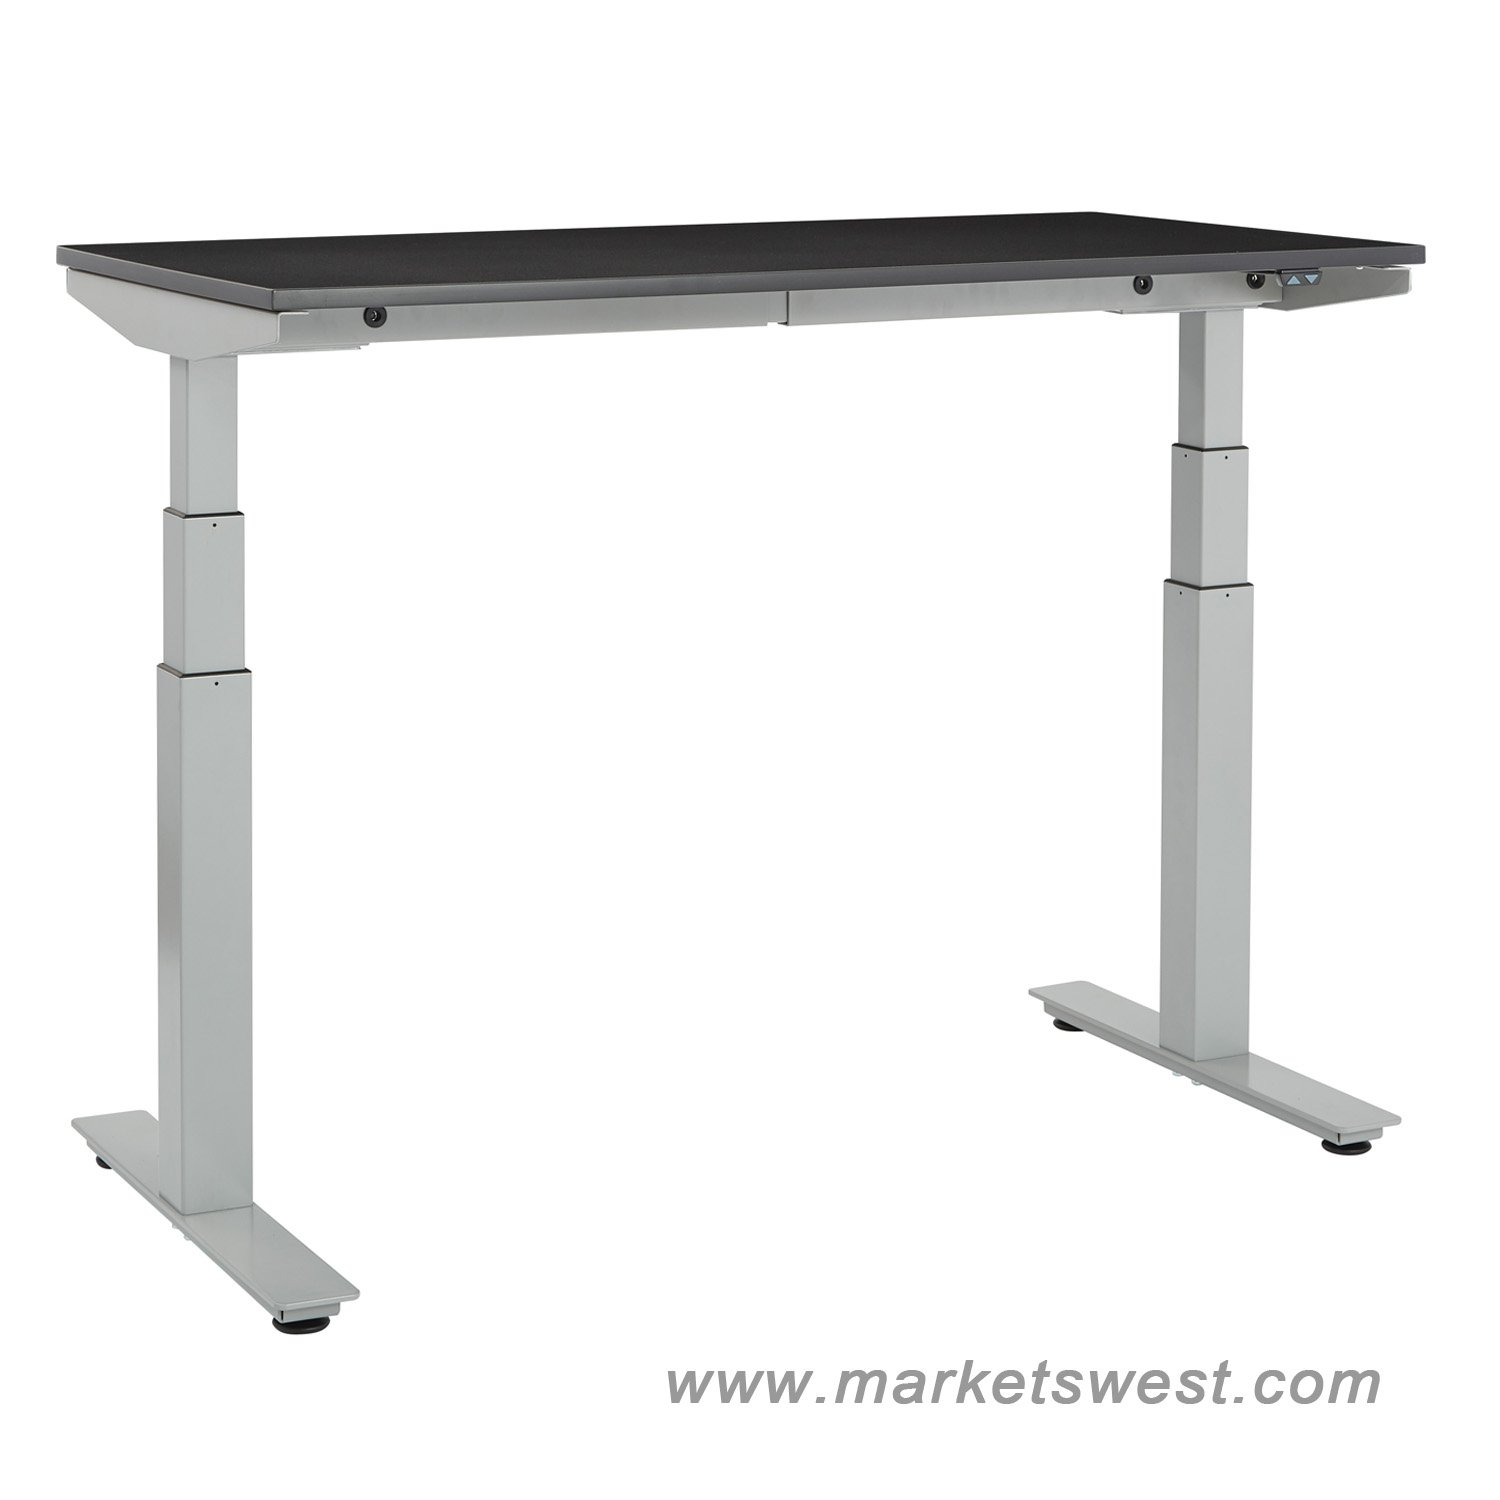 Ascend electric adjustable height table desk with 24 x 48 for Motorized adjustable height desk